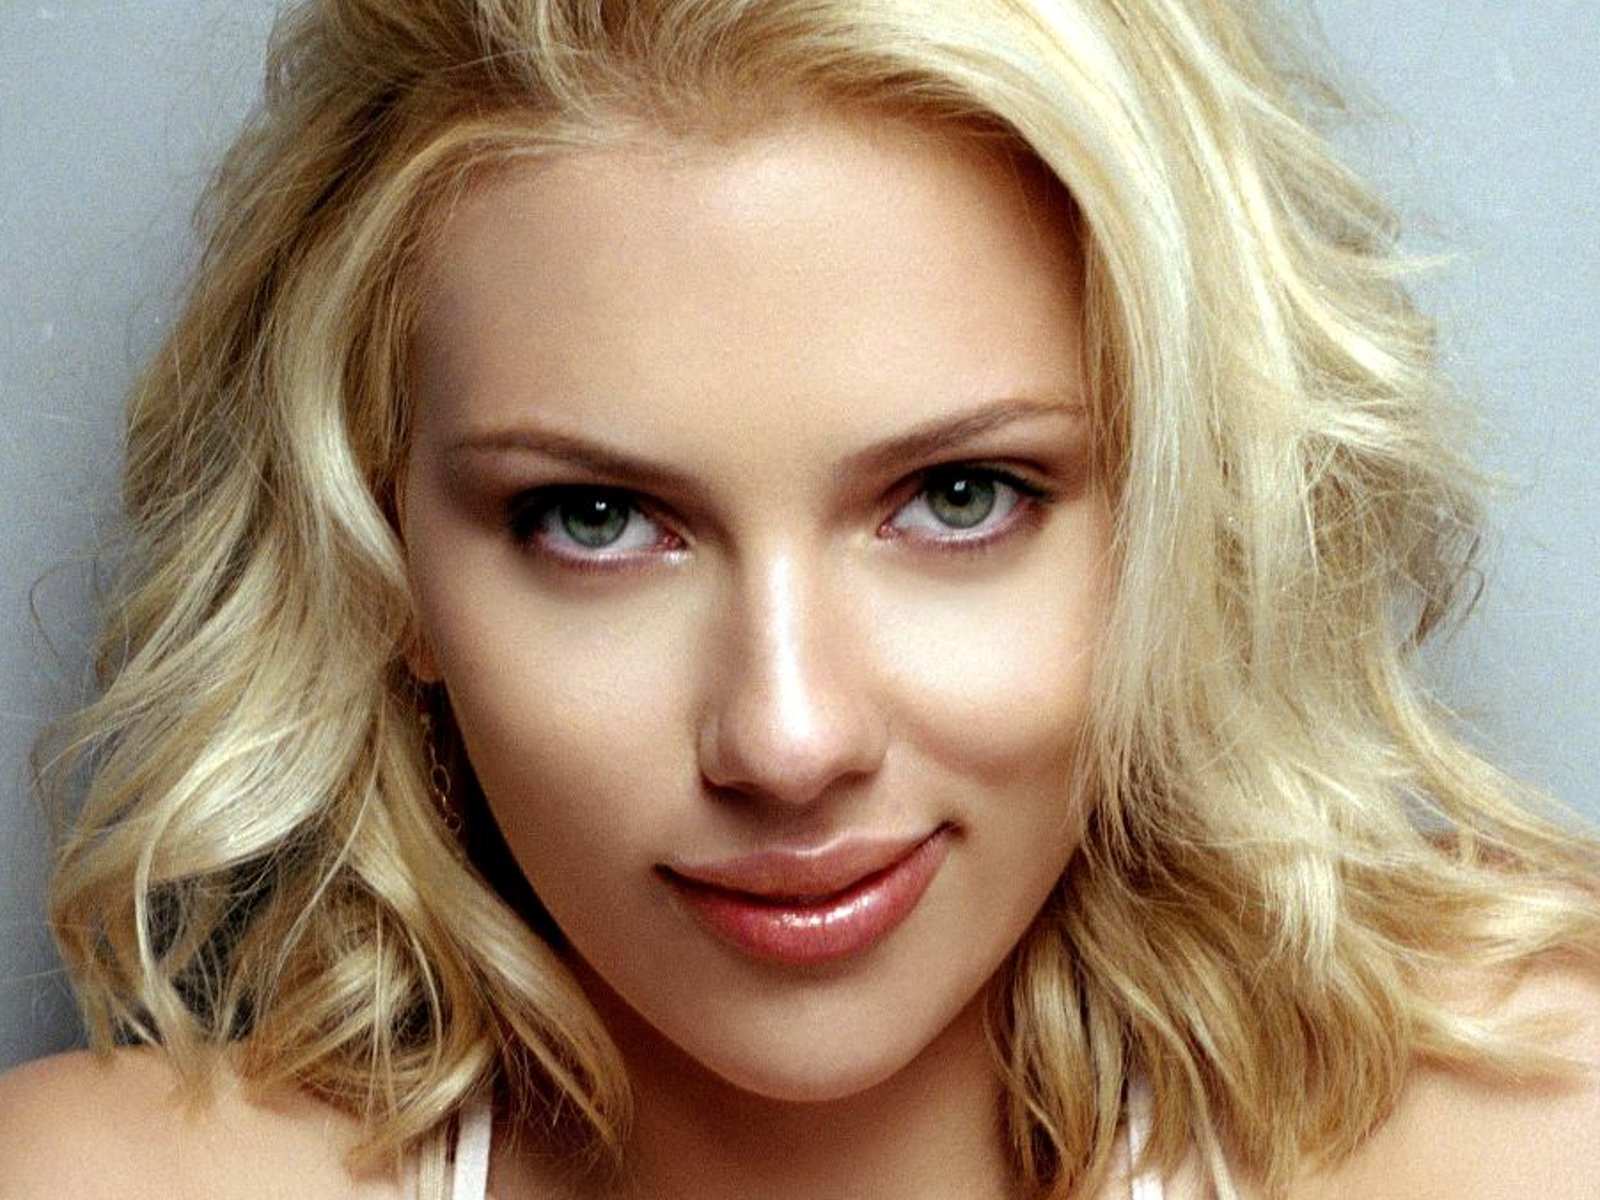 Scarlett Johansson Calls Siri 'A Backstabber' After Recent Diss